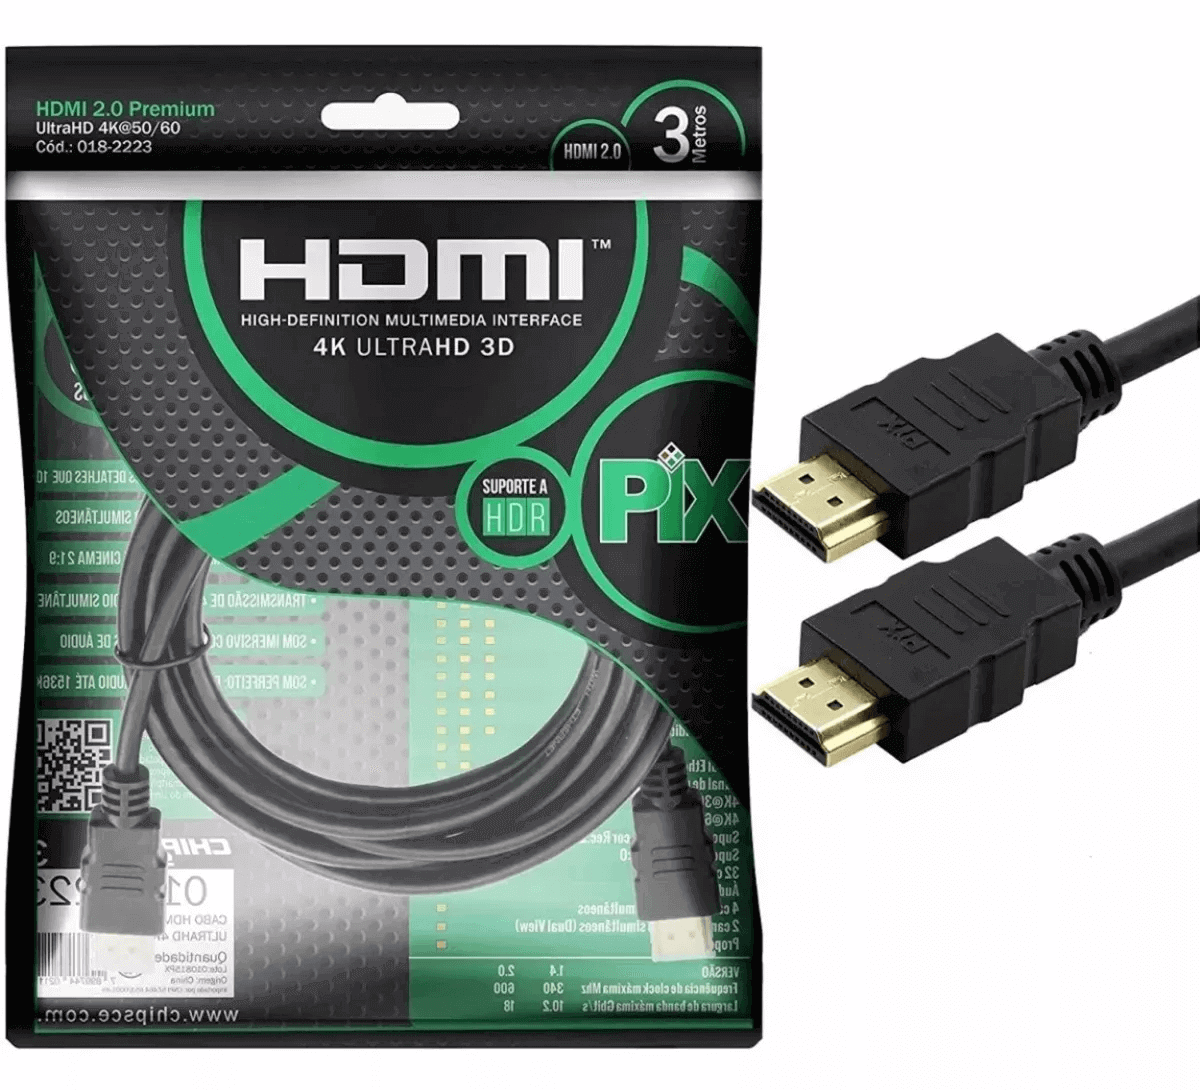 Kit 2 Cabo Hdmi 2.0 4k Hdr 3d 19 Pino 3m Pix Chip Sce